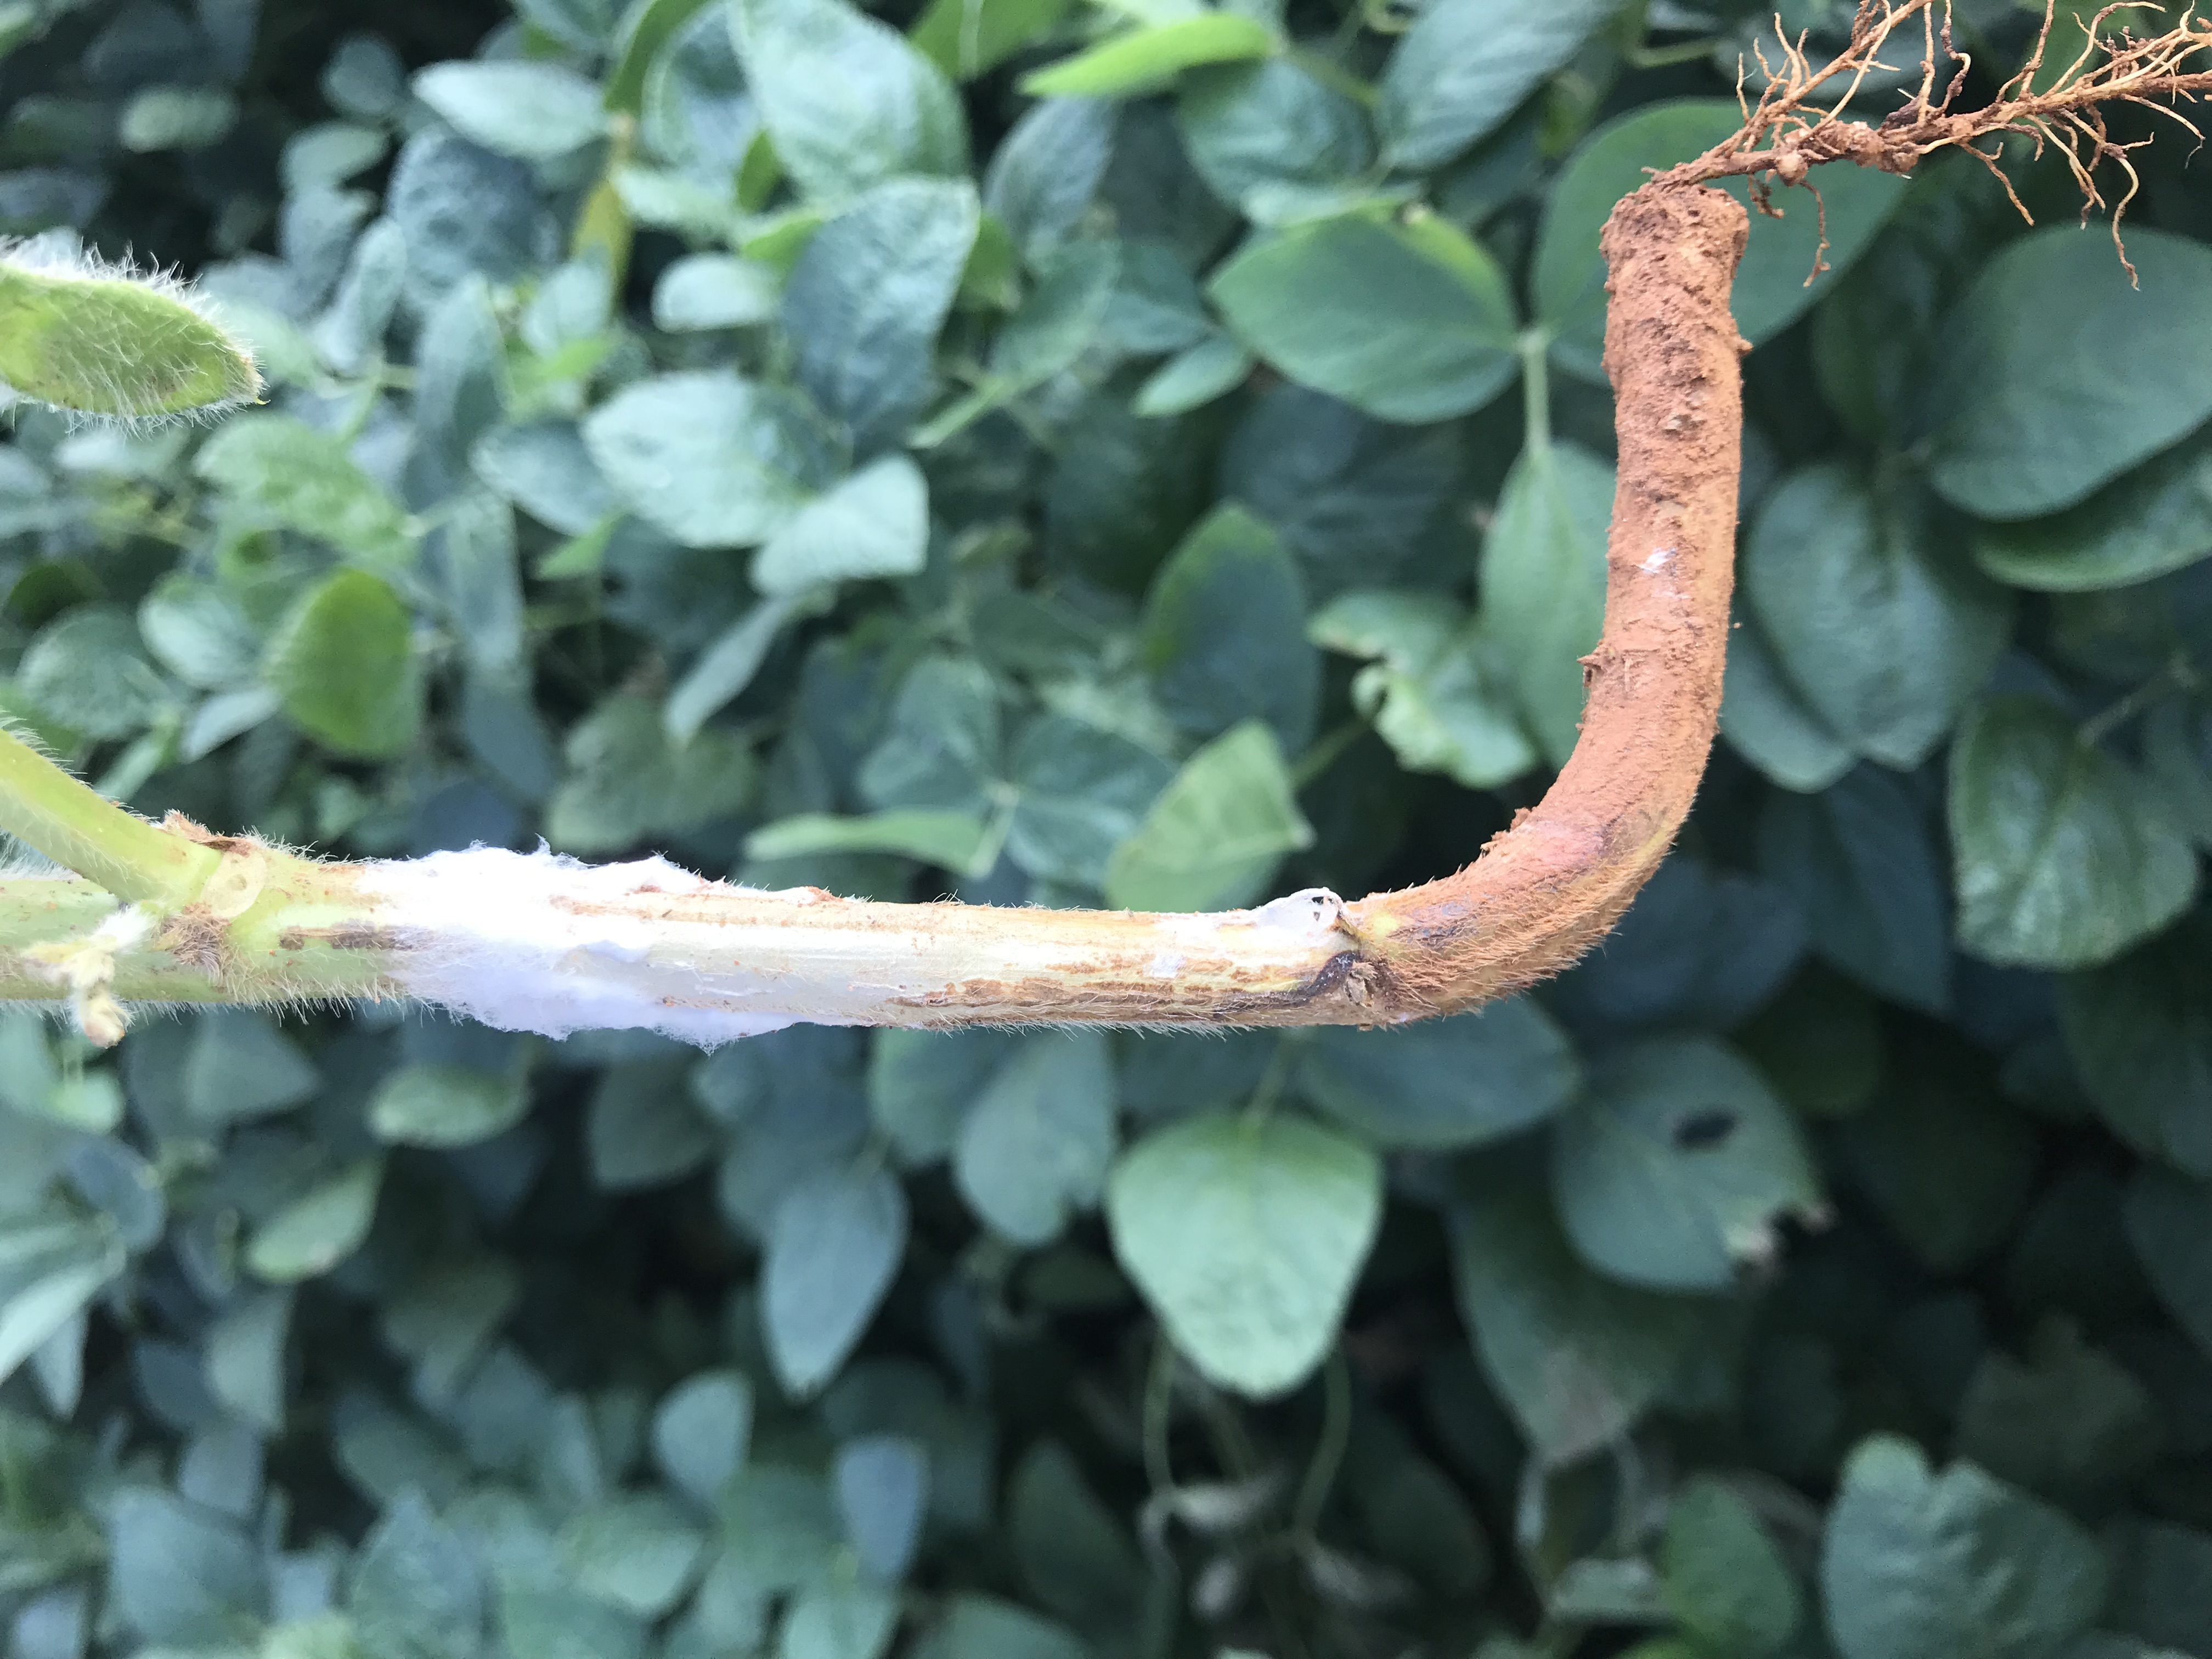 Management of Sclerotinia head and stem rot